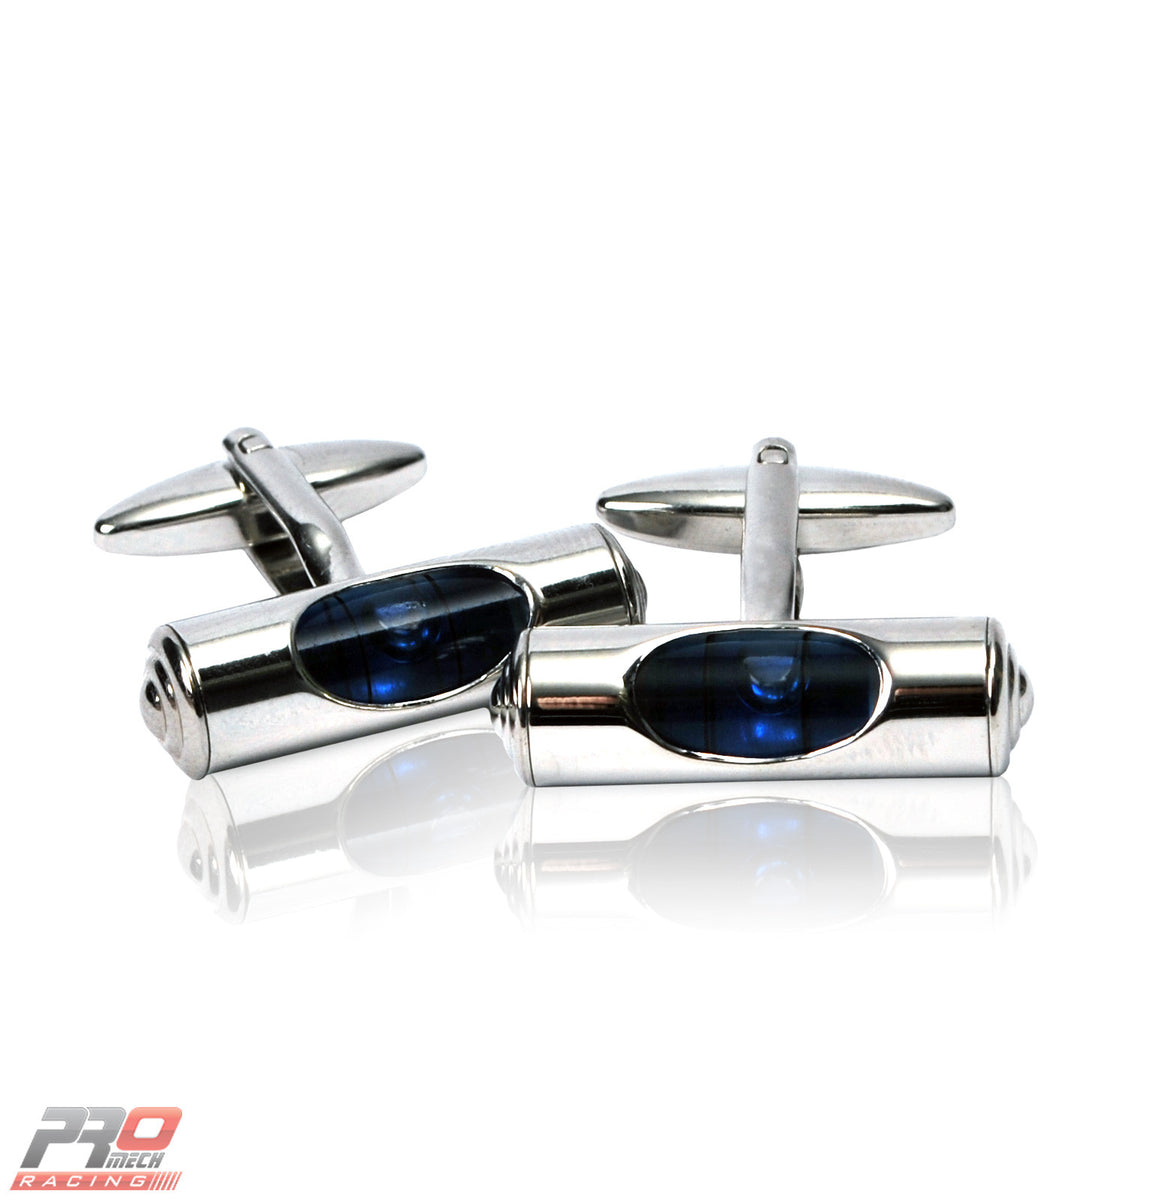 ProMech Racing Spirit Level Cufflinks Giftbox Set